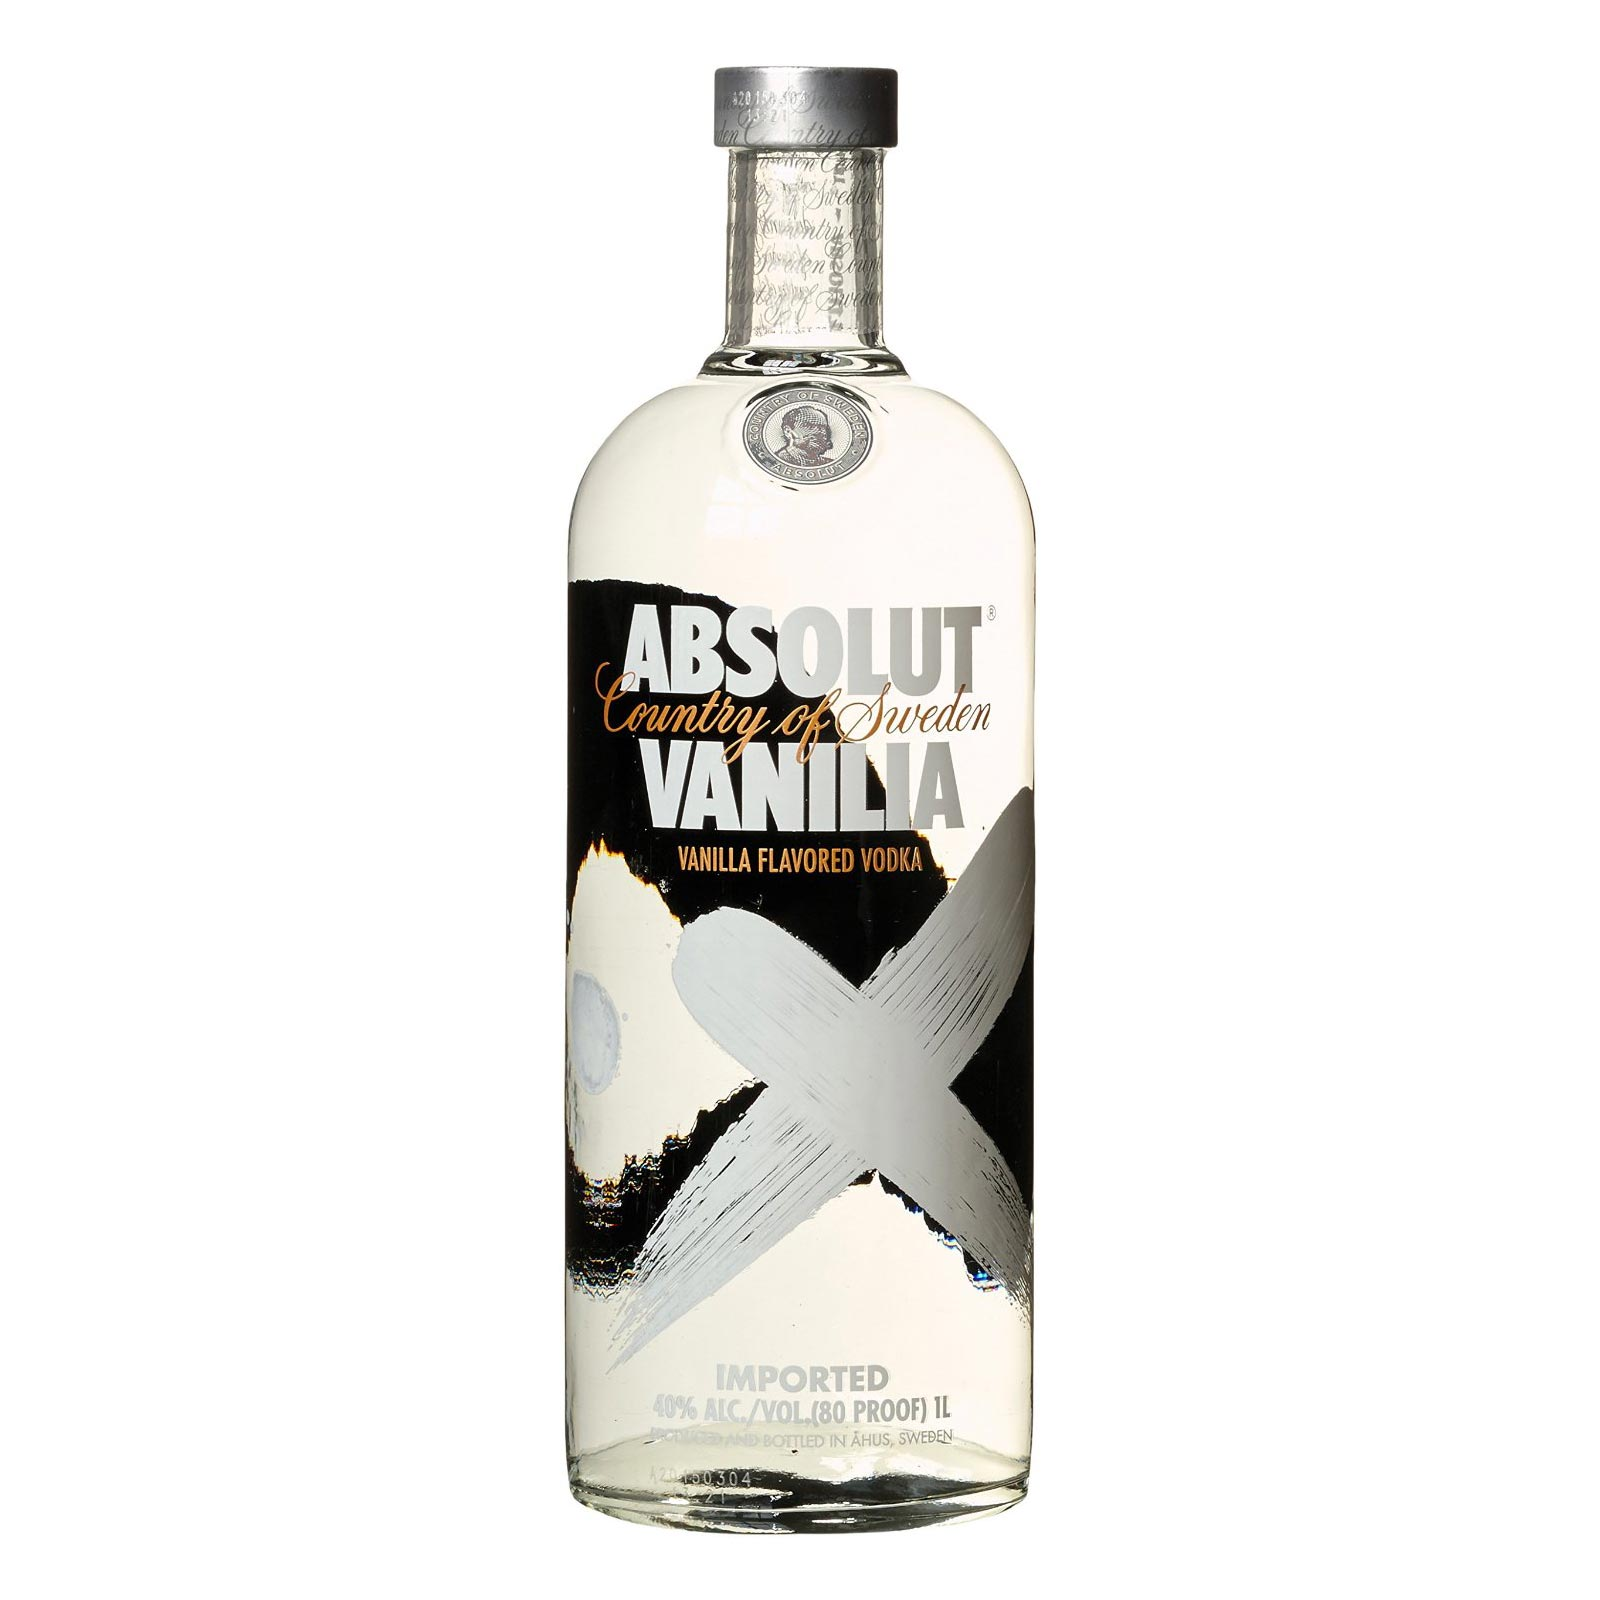 Cocktail-Gläser Original Absolut Vodka Vanila - 1 Liter Flasche